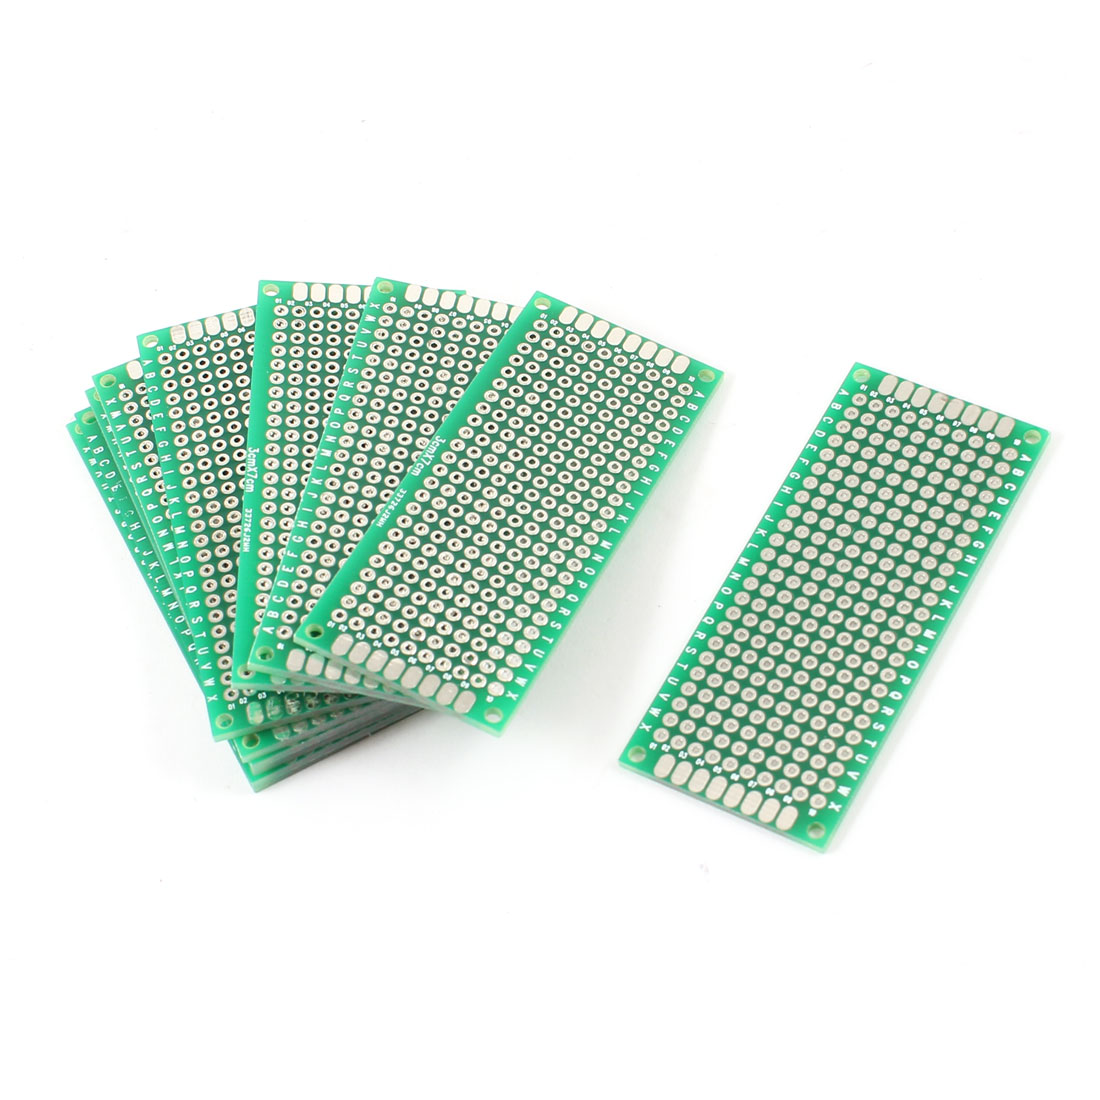 10 Pcs DIY Double Side Tinned Prototyping PCB Circuit Universal Board 3cmx7cm